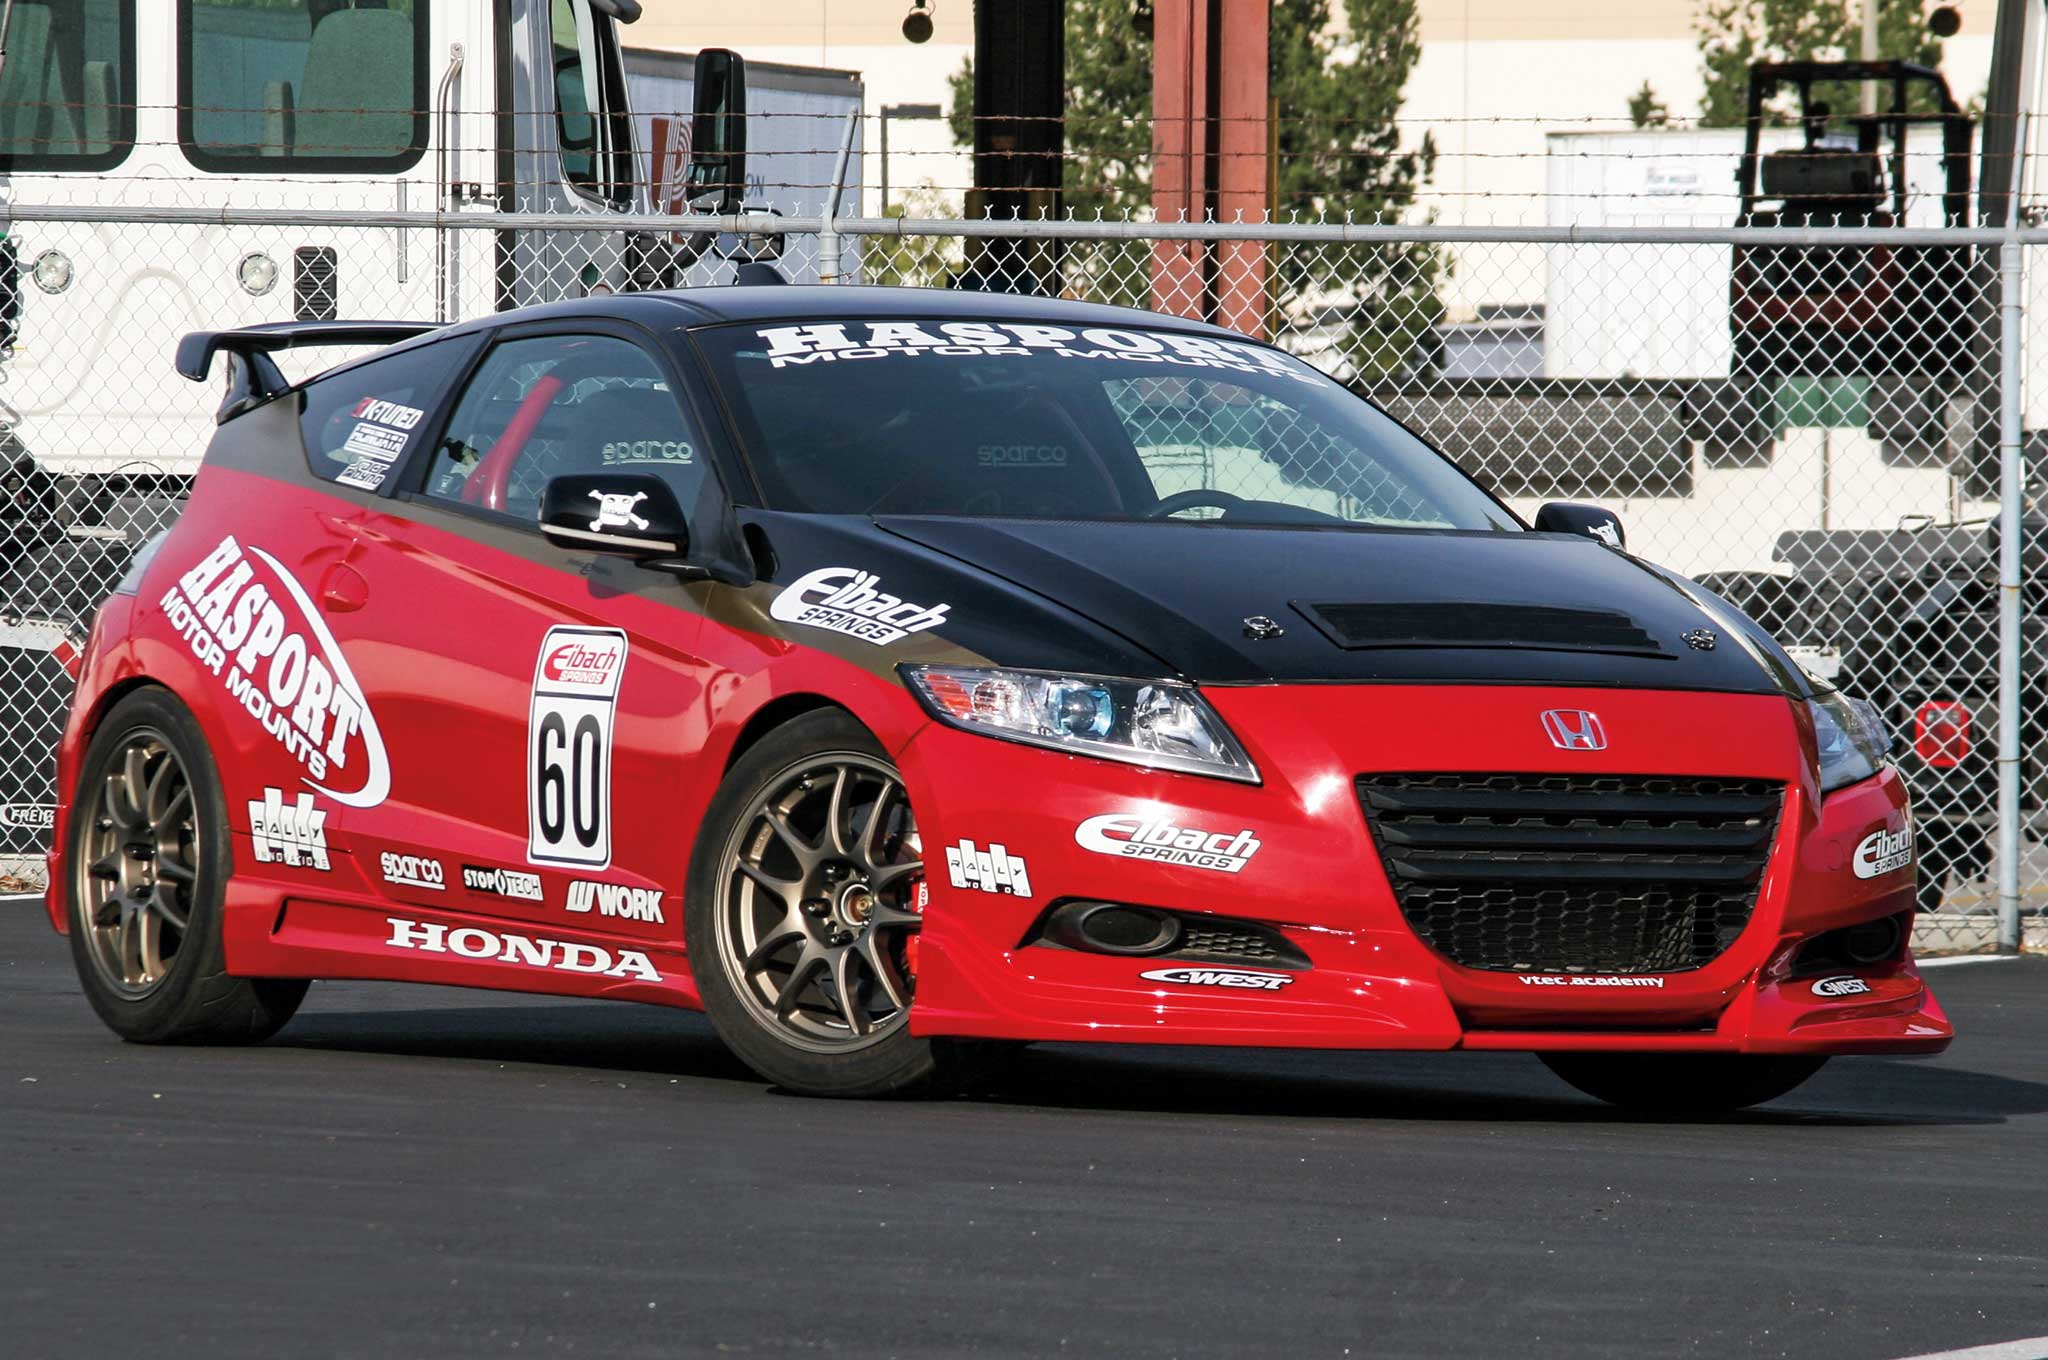 K-Swapping the Honda CR-Z - The Hybrid Remedy